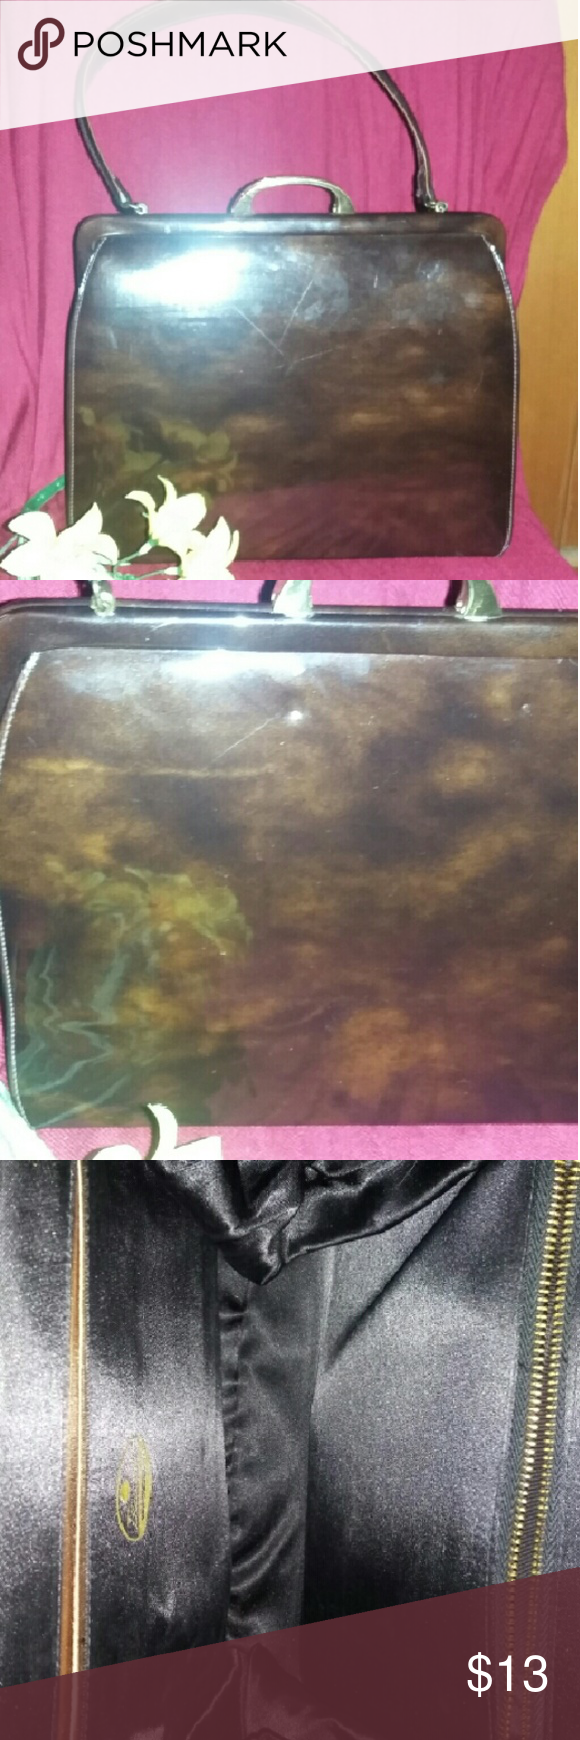 Vintage Patent Handbag Super gorgeous vintage tigers eye color hand bag, amazing condition flawless on the inside, only flaws are some scratches and some small dents. Super cute and perfect for any rockabilly outfit. #rockabilly#patent#50's#vintage vintage Bags Satchels